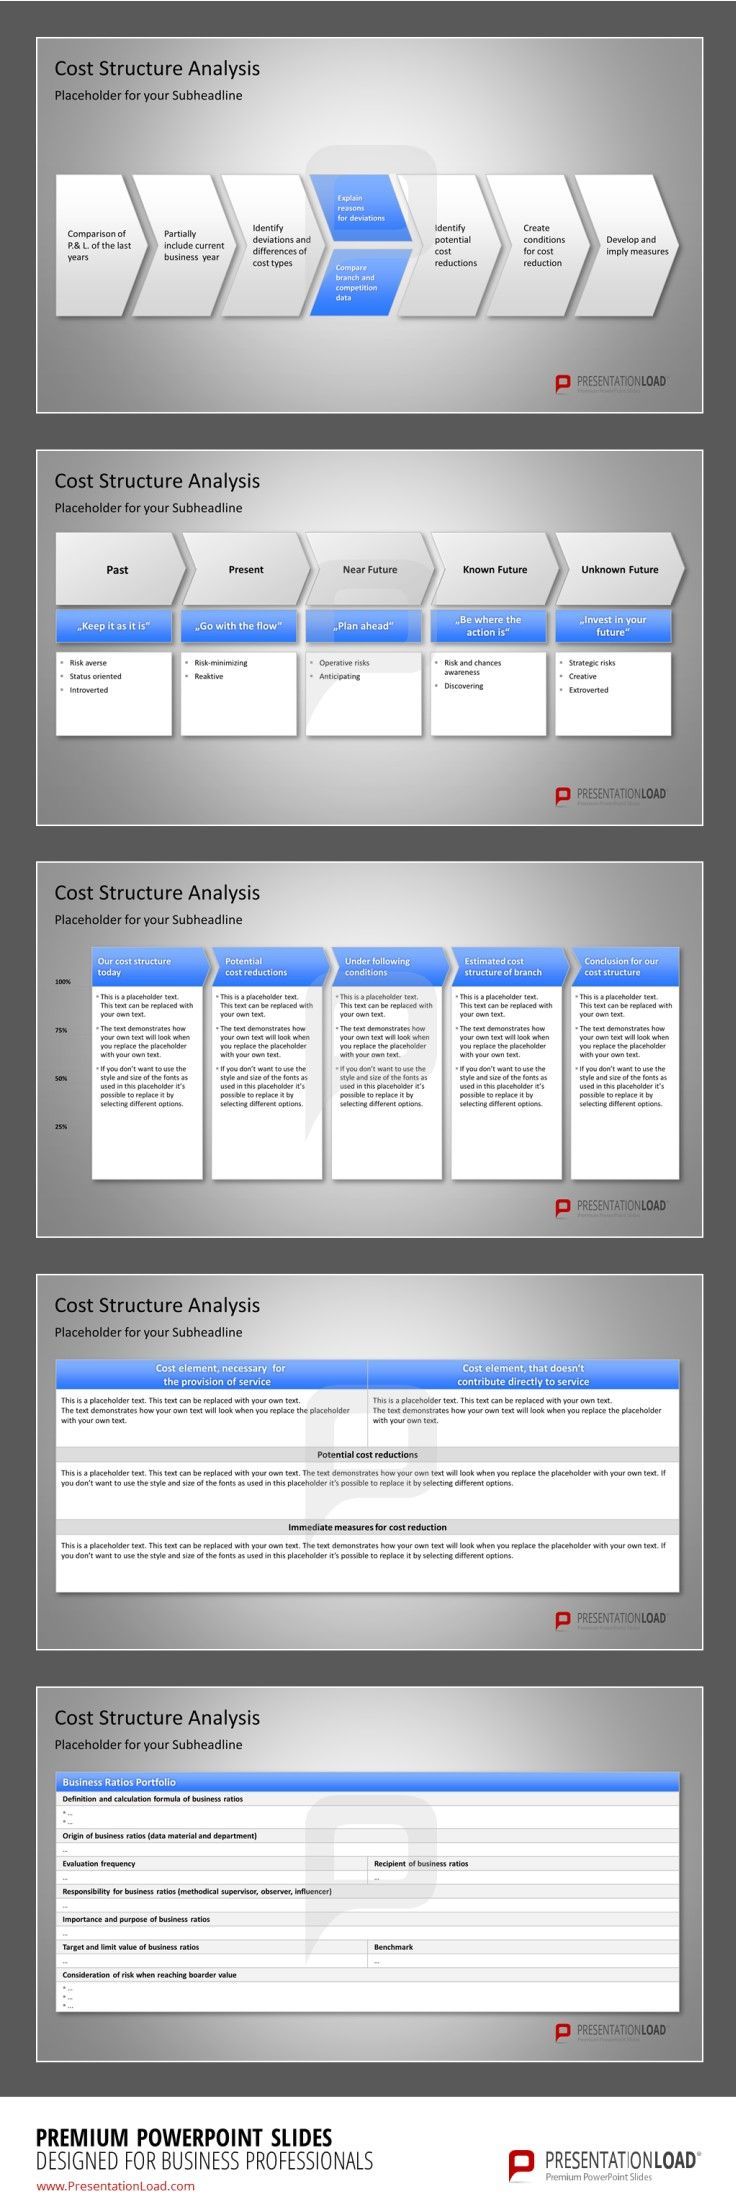 26 best STRATEGIE // POWERPOINT images on Pinterest | Templates ...